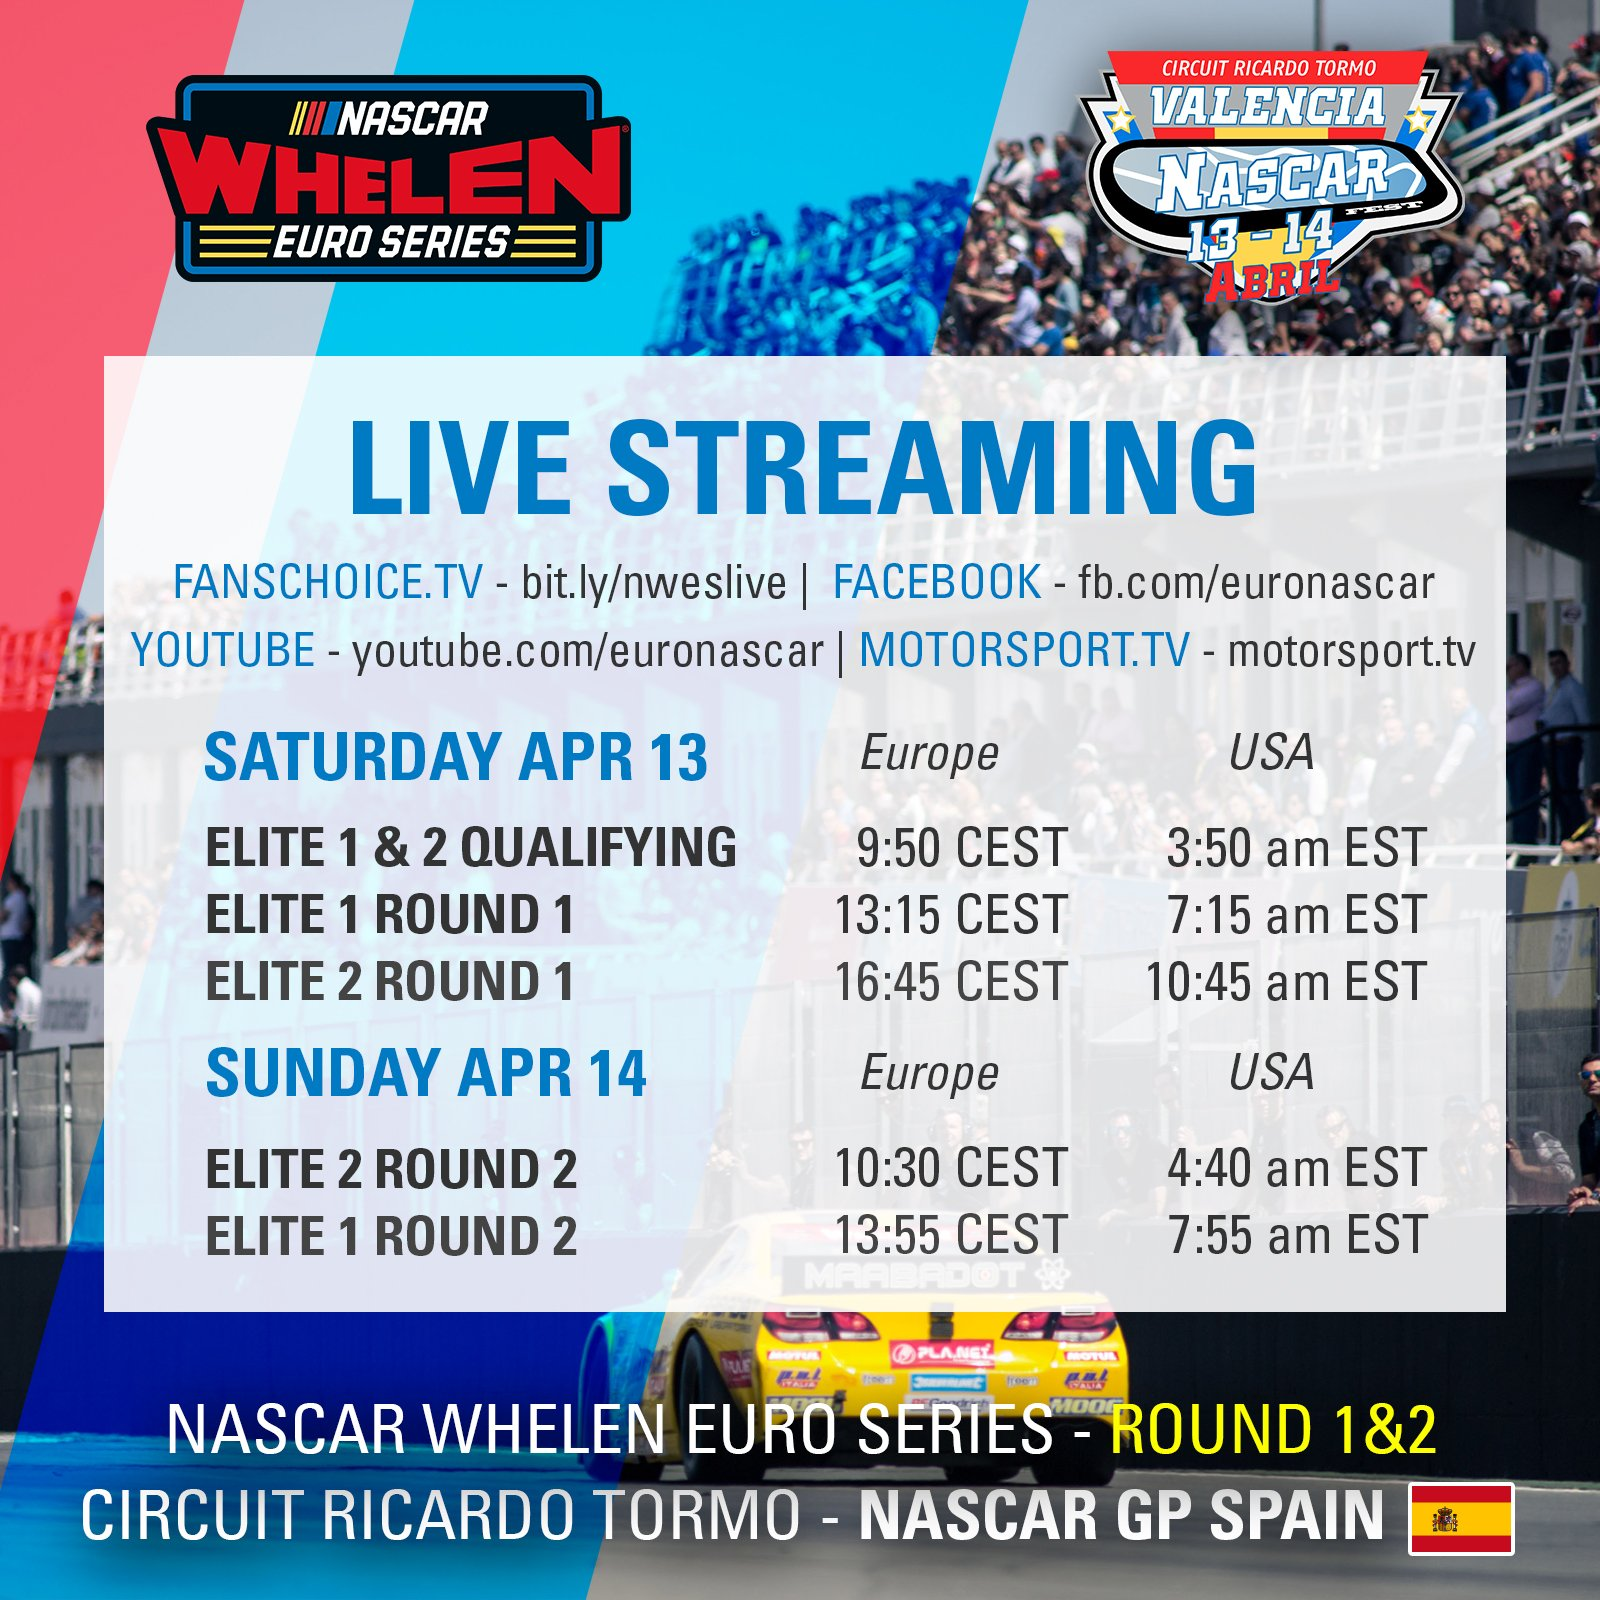 Jacques en Nascar Whelen Euro Series avec Go Fas Racing - Page 4 D3pgY4yWsAAeAB2?format=jpg&name=large